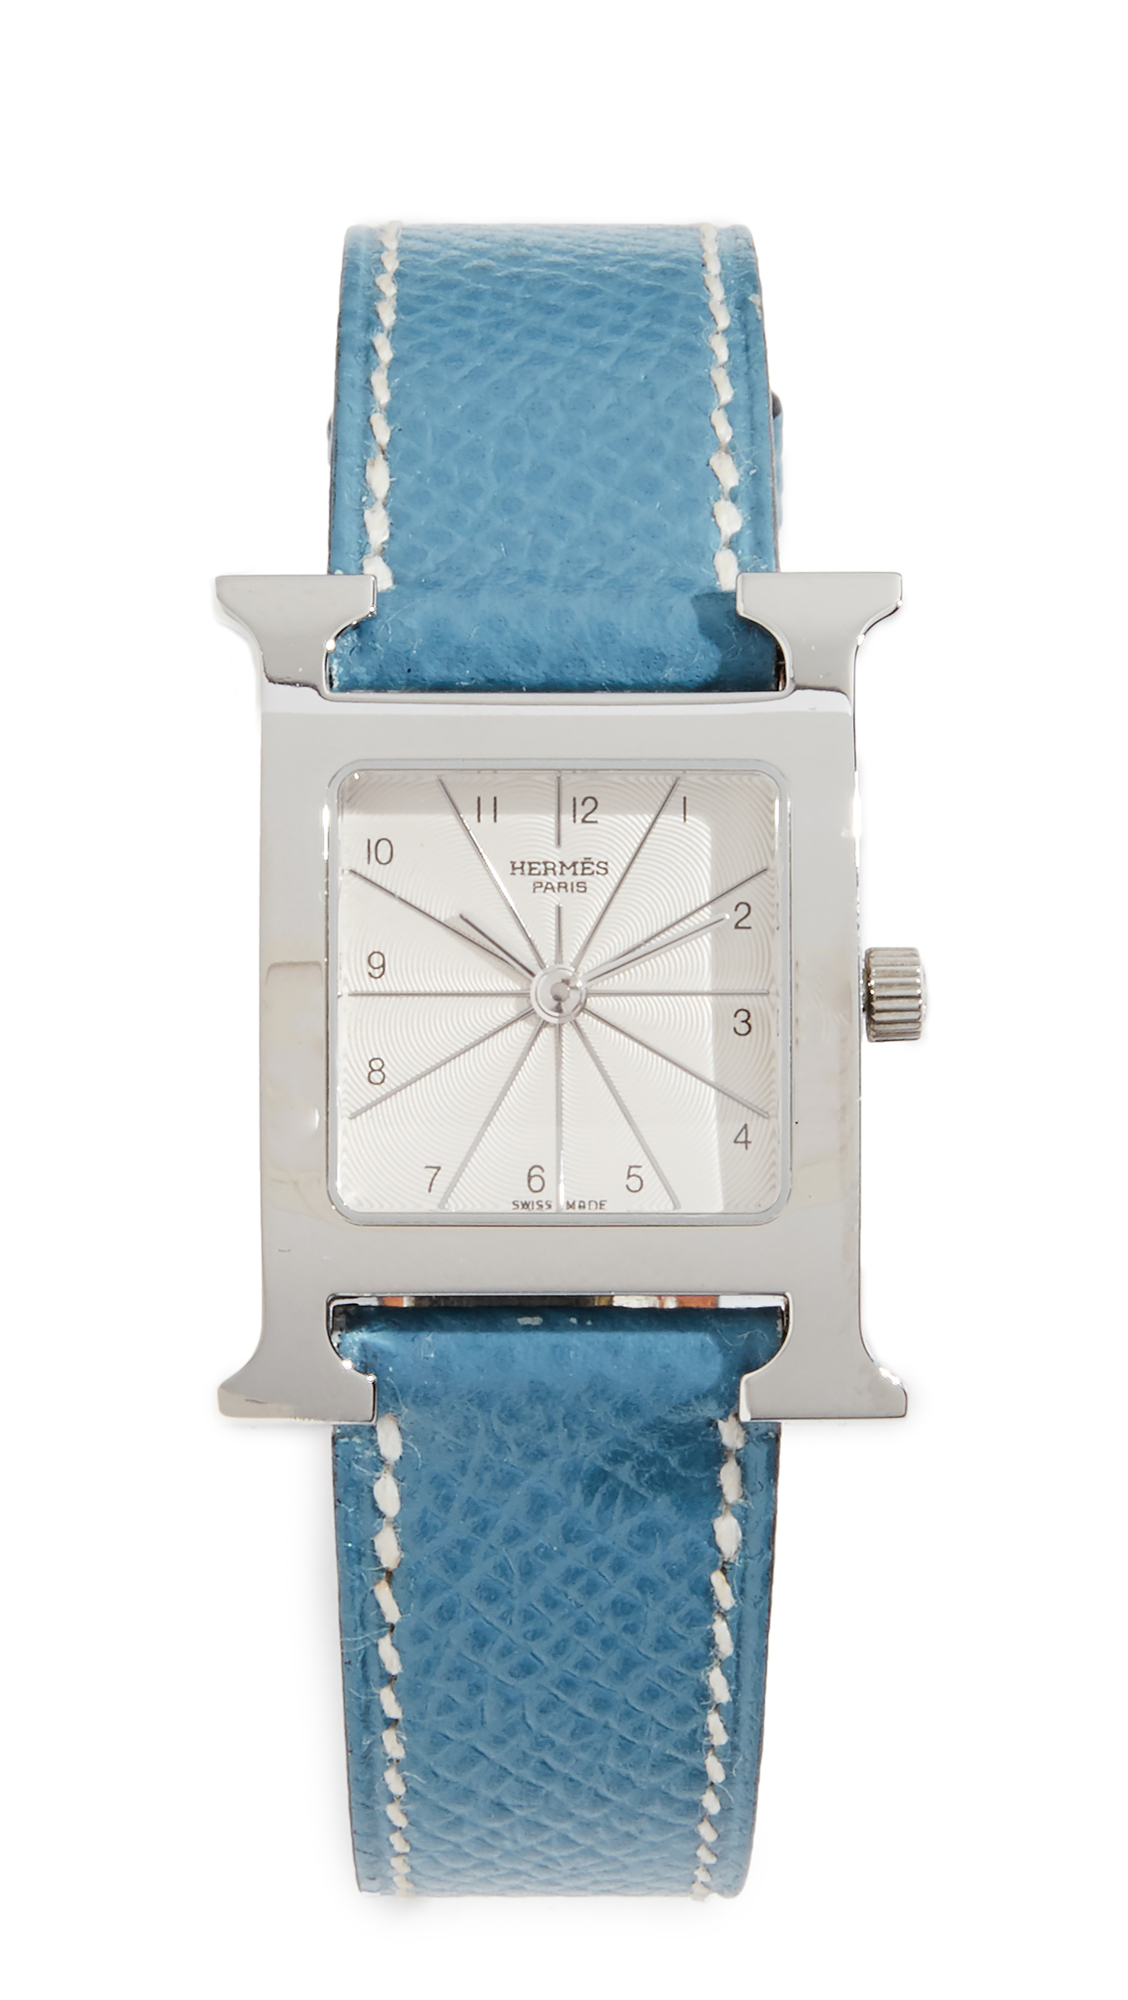 Hermes H Hour Pm Watch, Blue/Silver